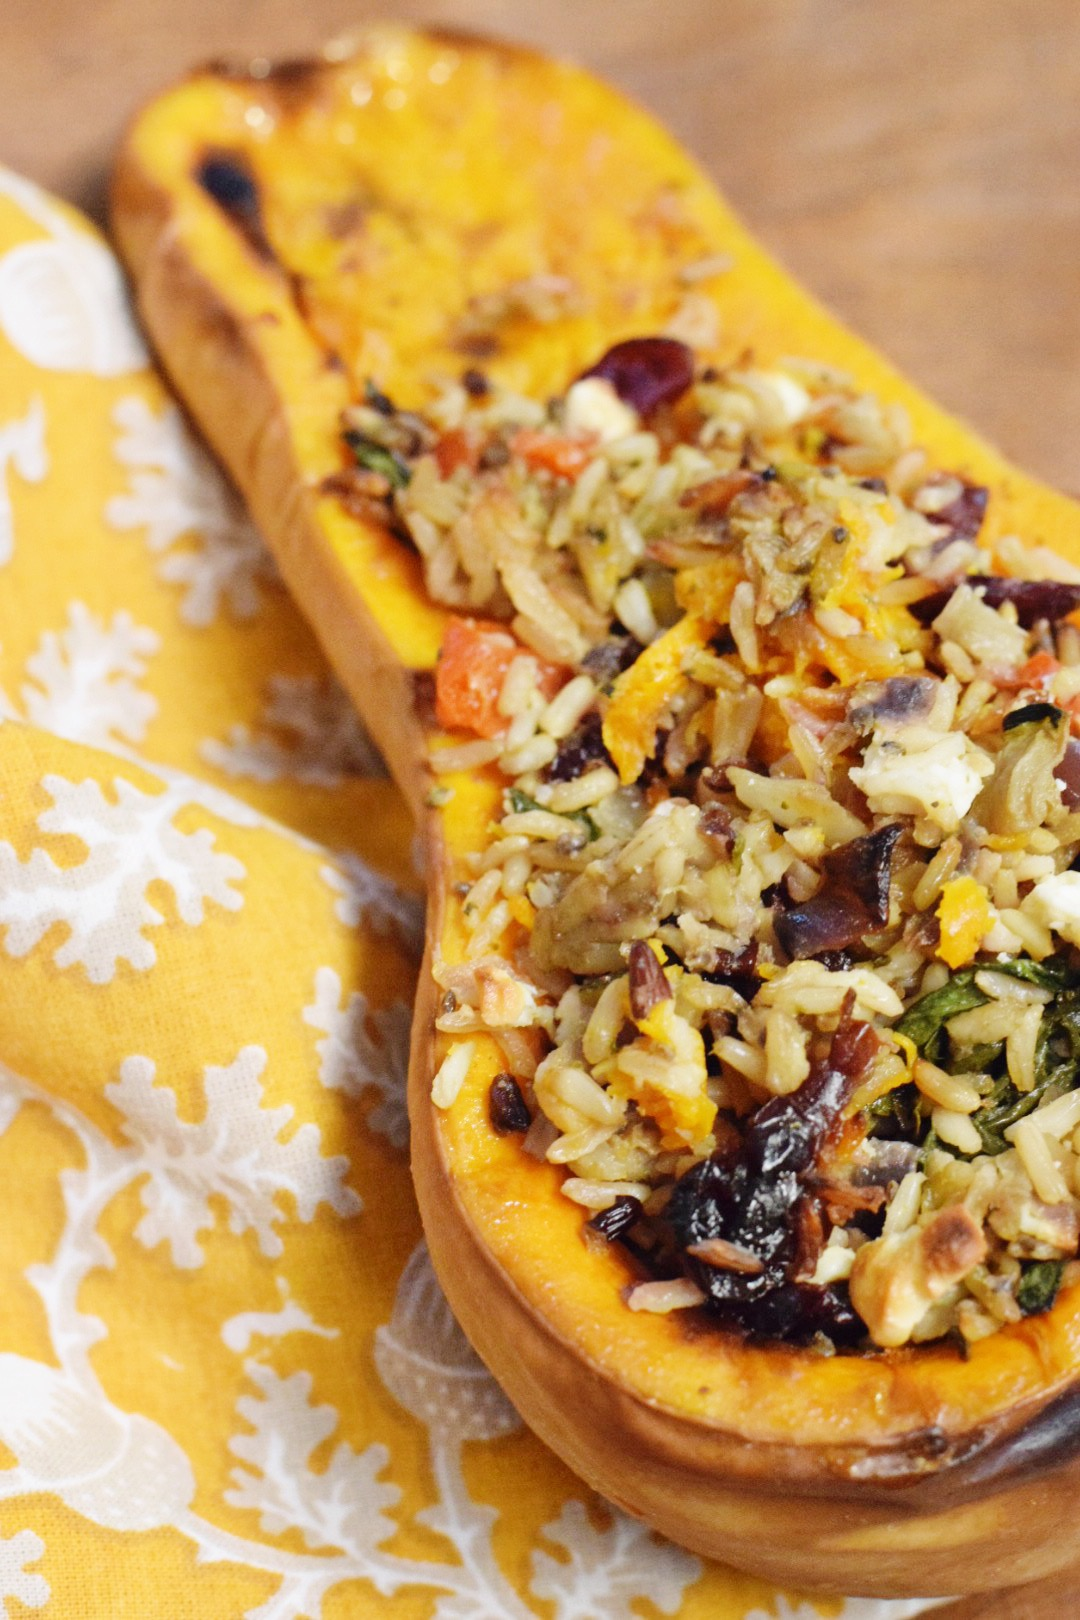 Roasted Stuffed Butternut Squash - Butternut Squash Recipe - Baked Butternut Squash For Fall - Fall Recipe - Gluten Free Recipe - Vegetarian Recipe - Vegetarian Fall Recipe - Fall Dinner Recipe - Communikait by Kait Hanson